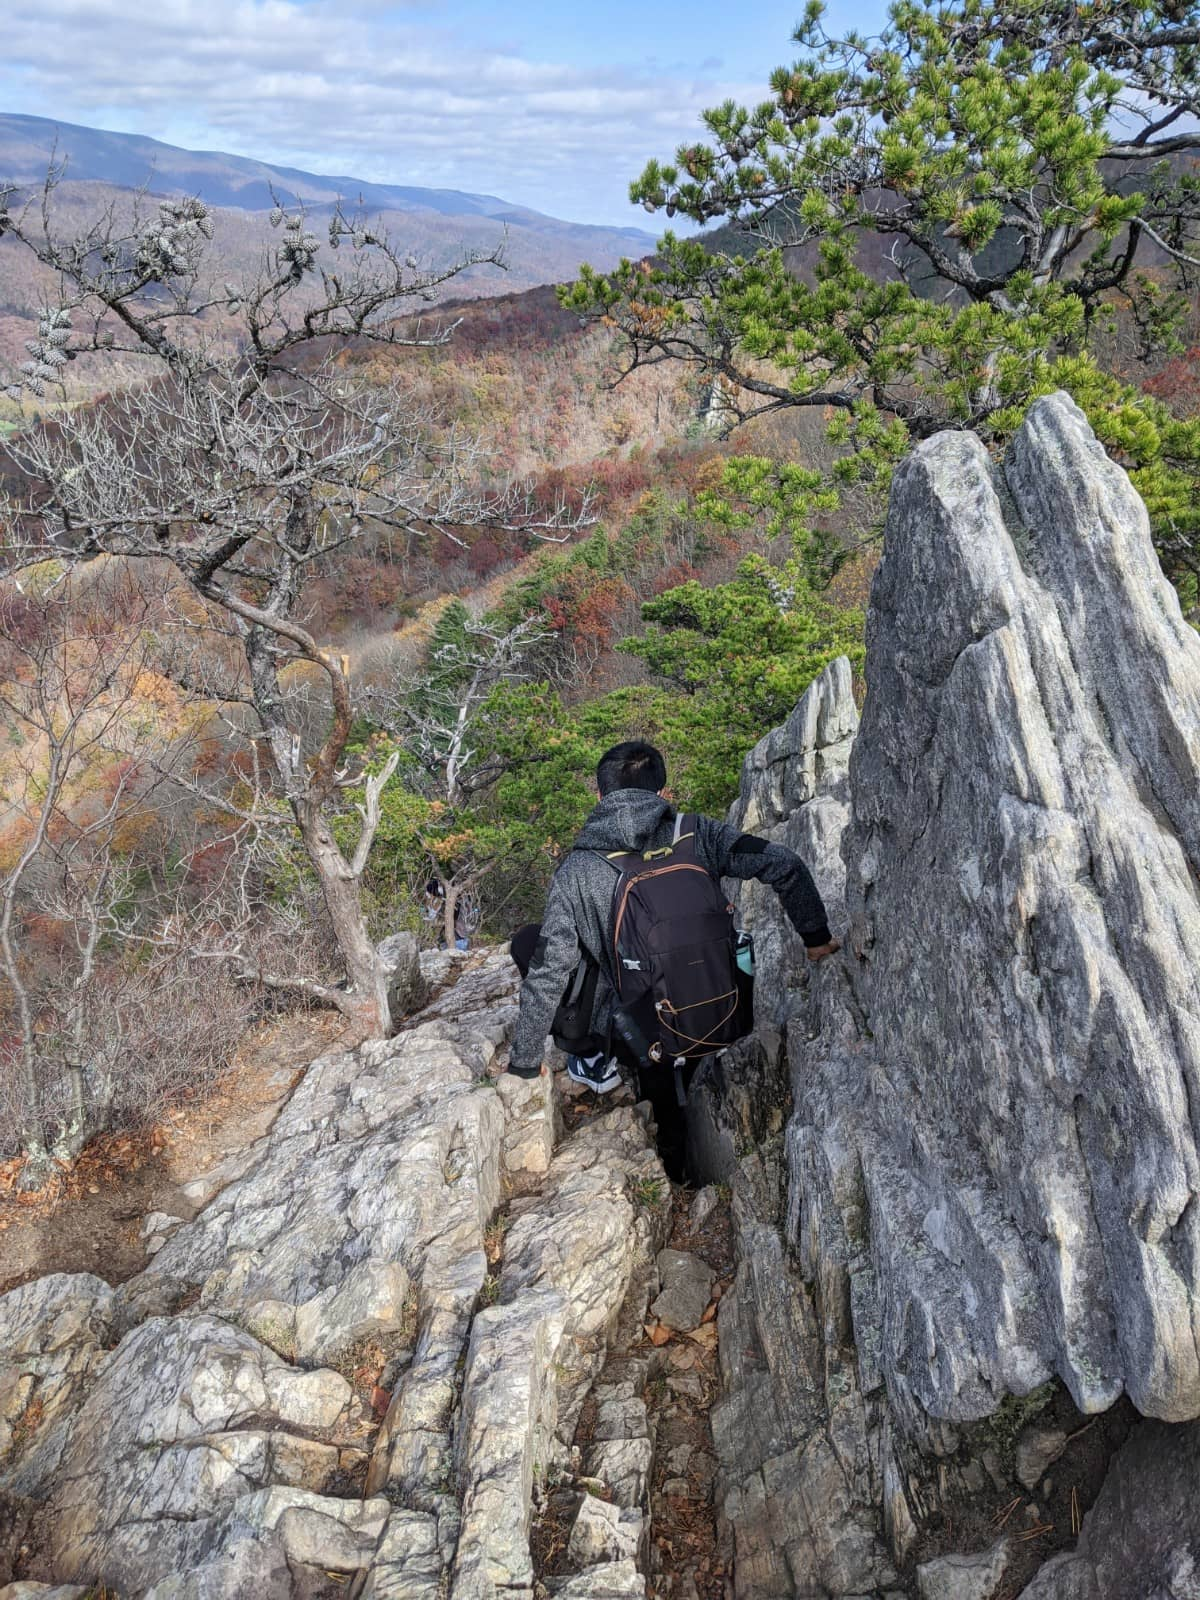 climbing down from the peak of Seneca Rocks with the jagged rock and view of the valley